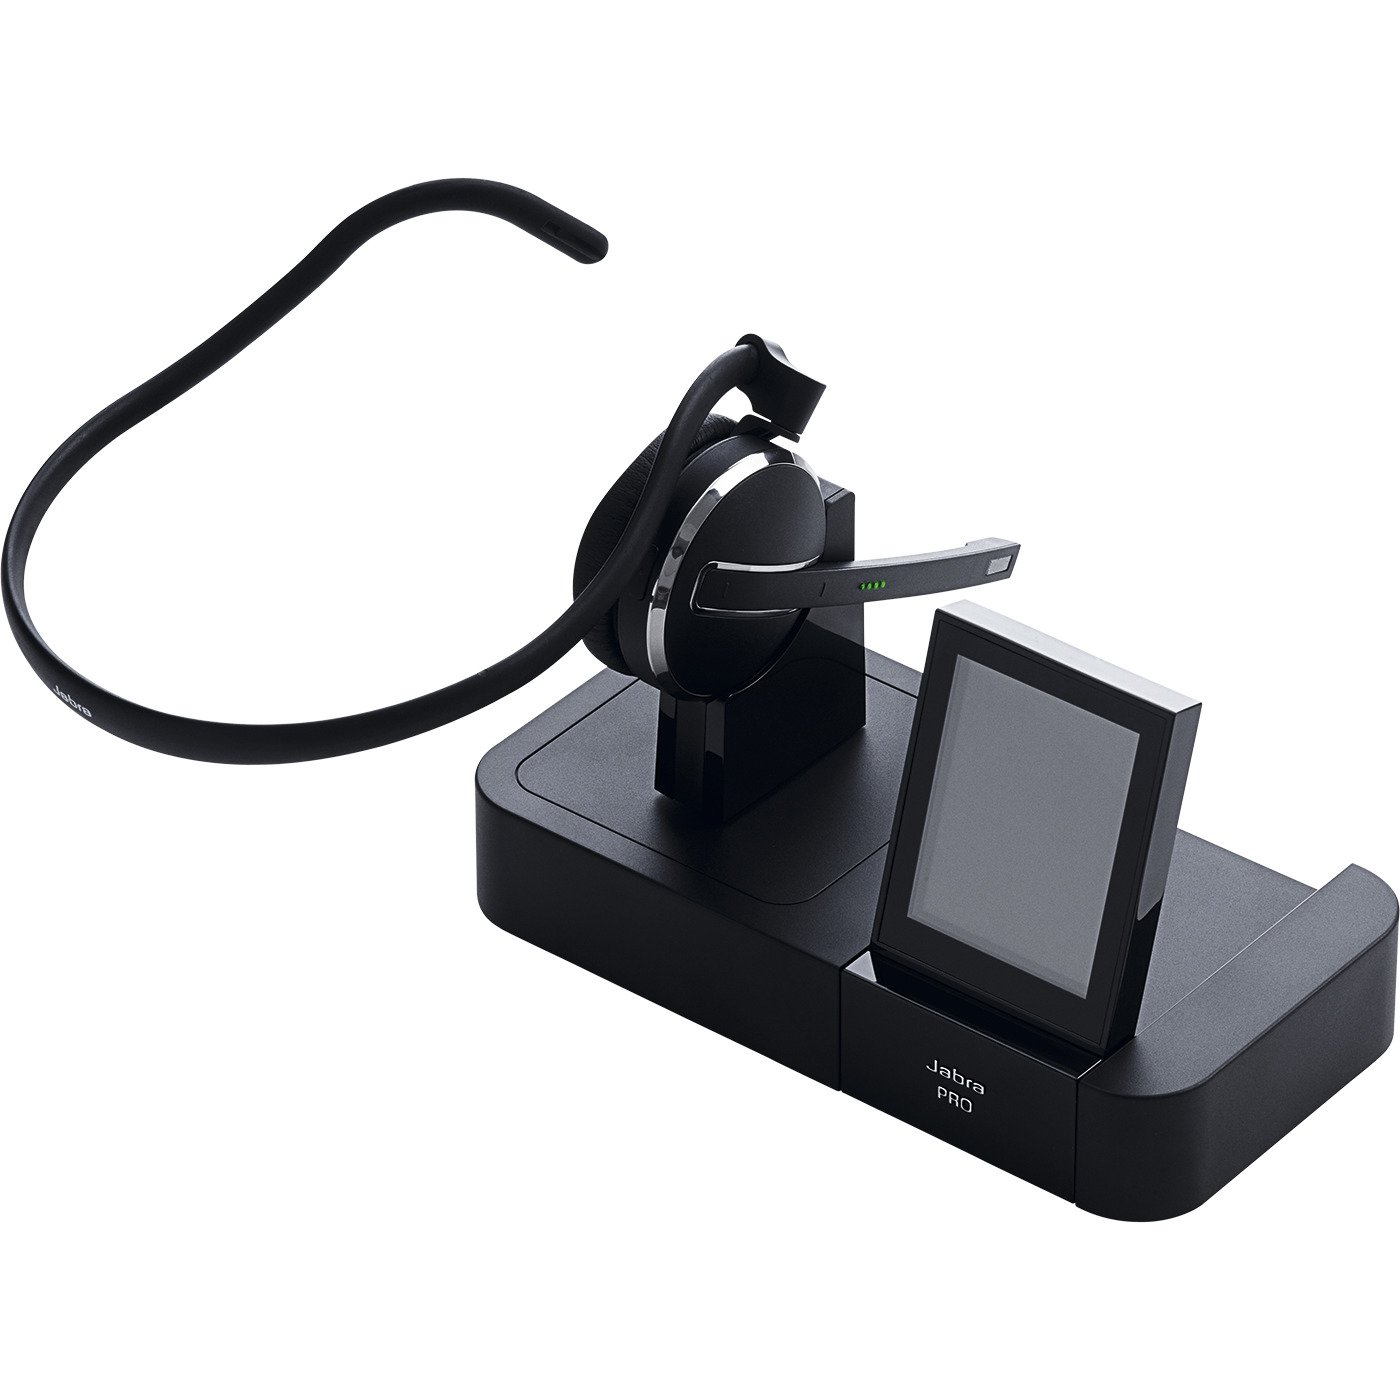 Jabra PRO 9470 Mono Wireless Headset with Touchscreen for Deskphone, Softphone & Mobile Phone by Jabra